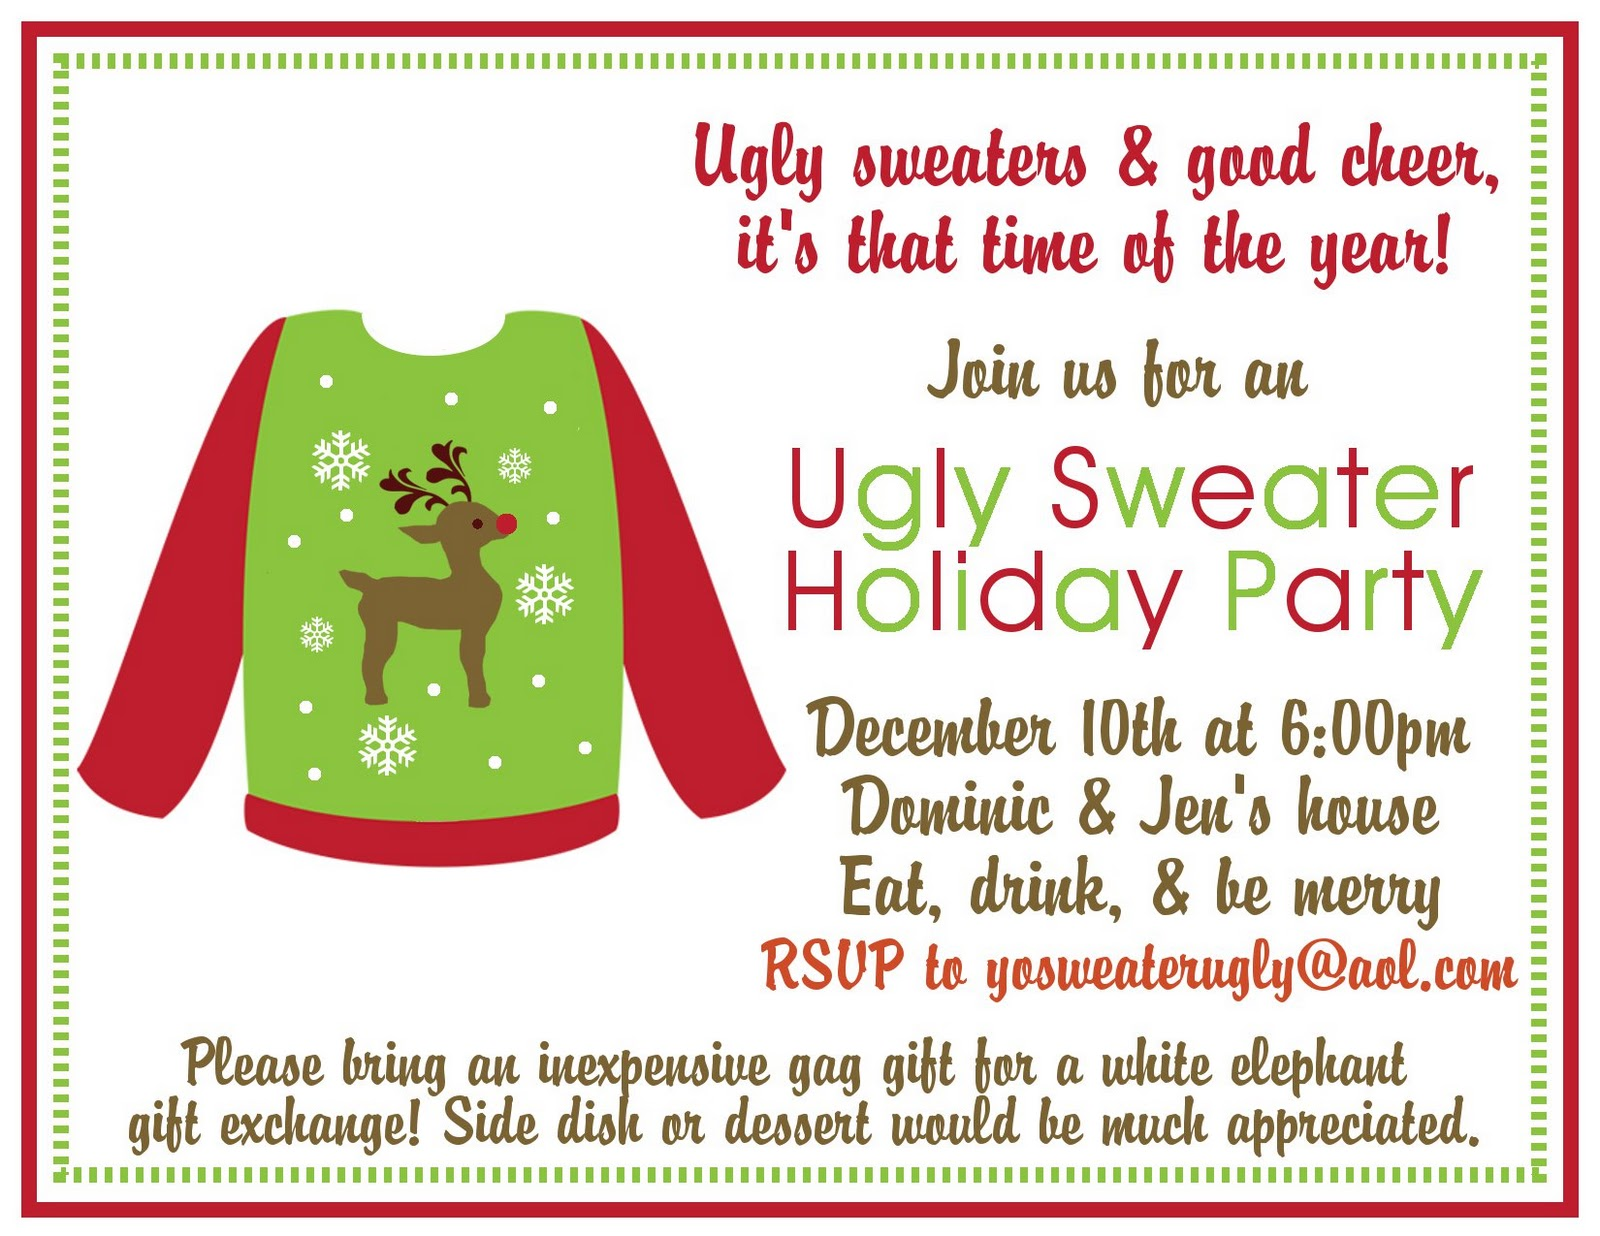 Ugly Sweater Party {Holiday Party Ideas} | Delightfully Noted